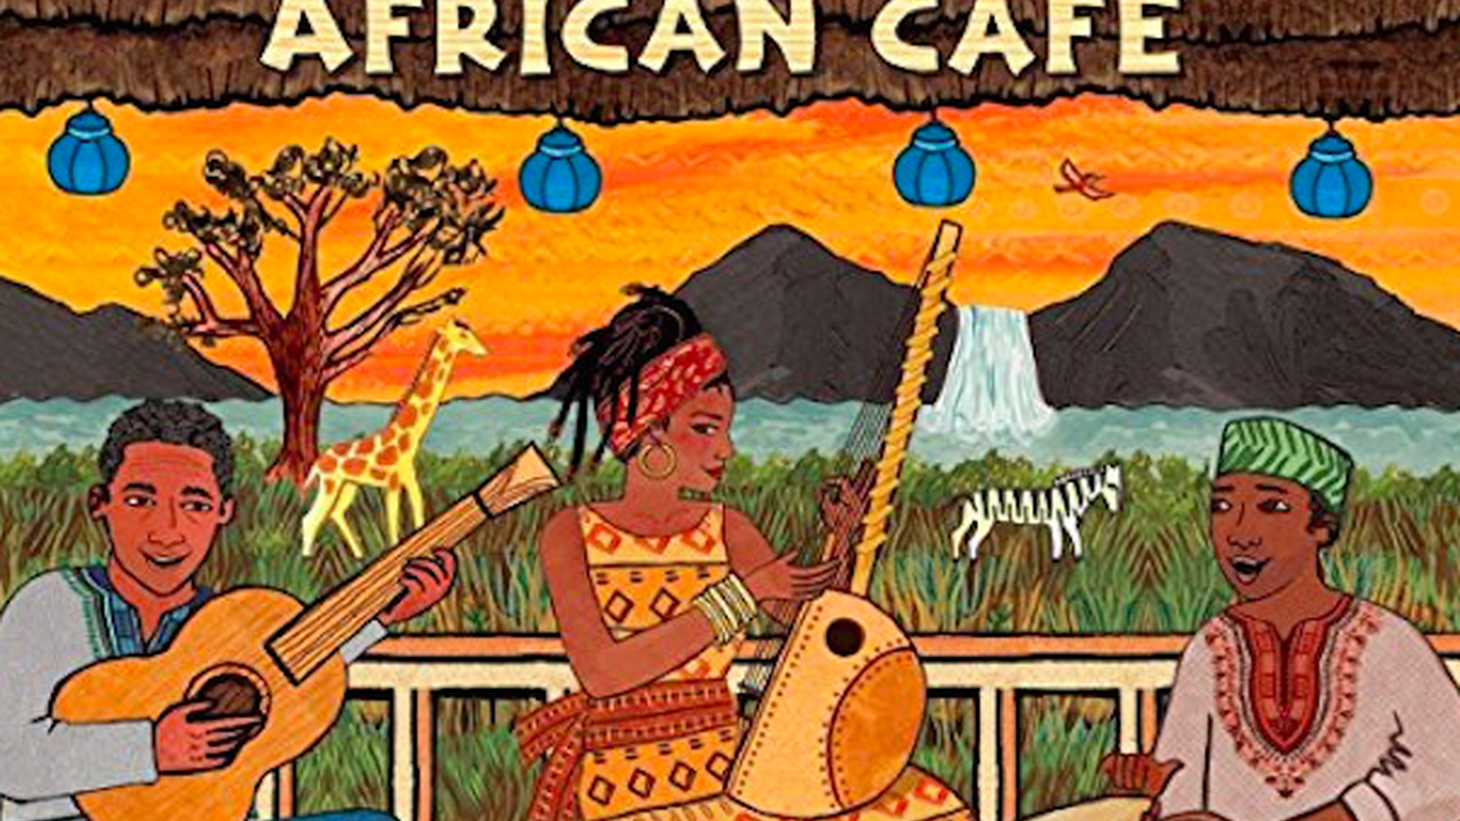 This week Rhythm Planet showcases new music from Cuba's Orquesta Akokan, pianists Eliane Elias and Edward Simon, a dose of African music, and other sonic delicacies.